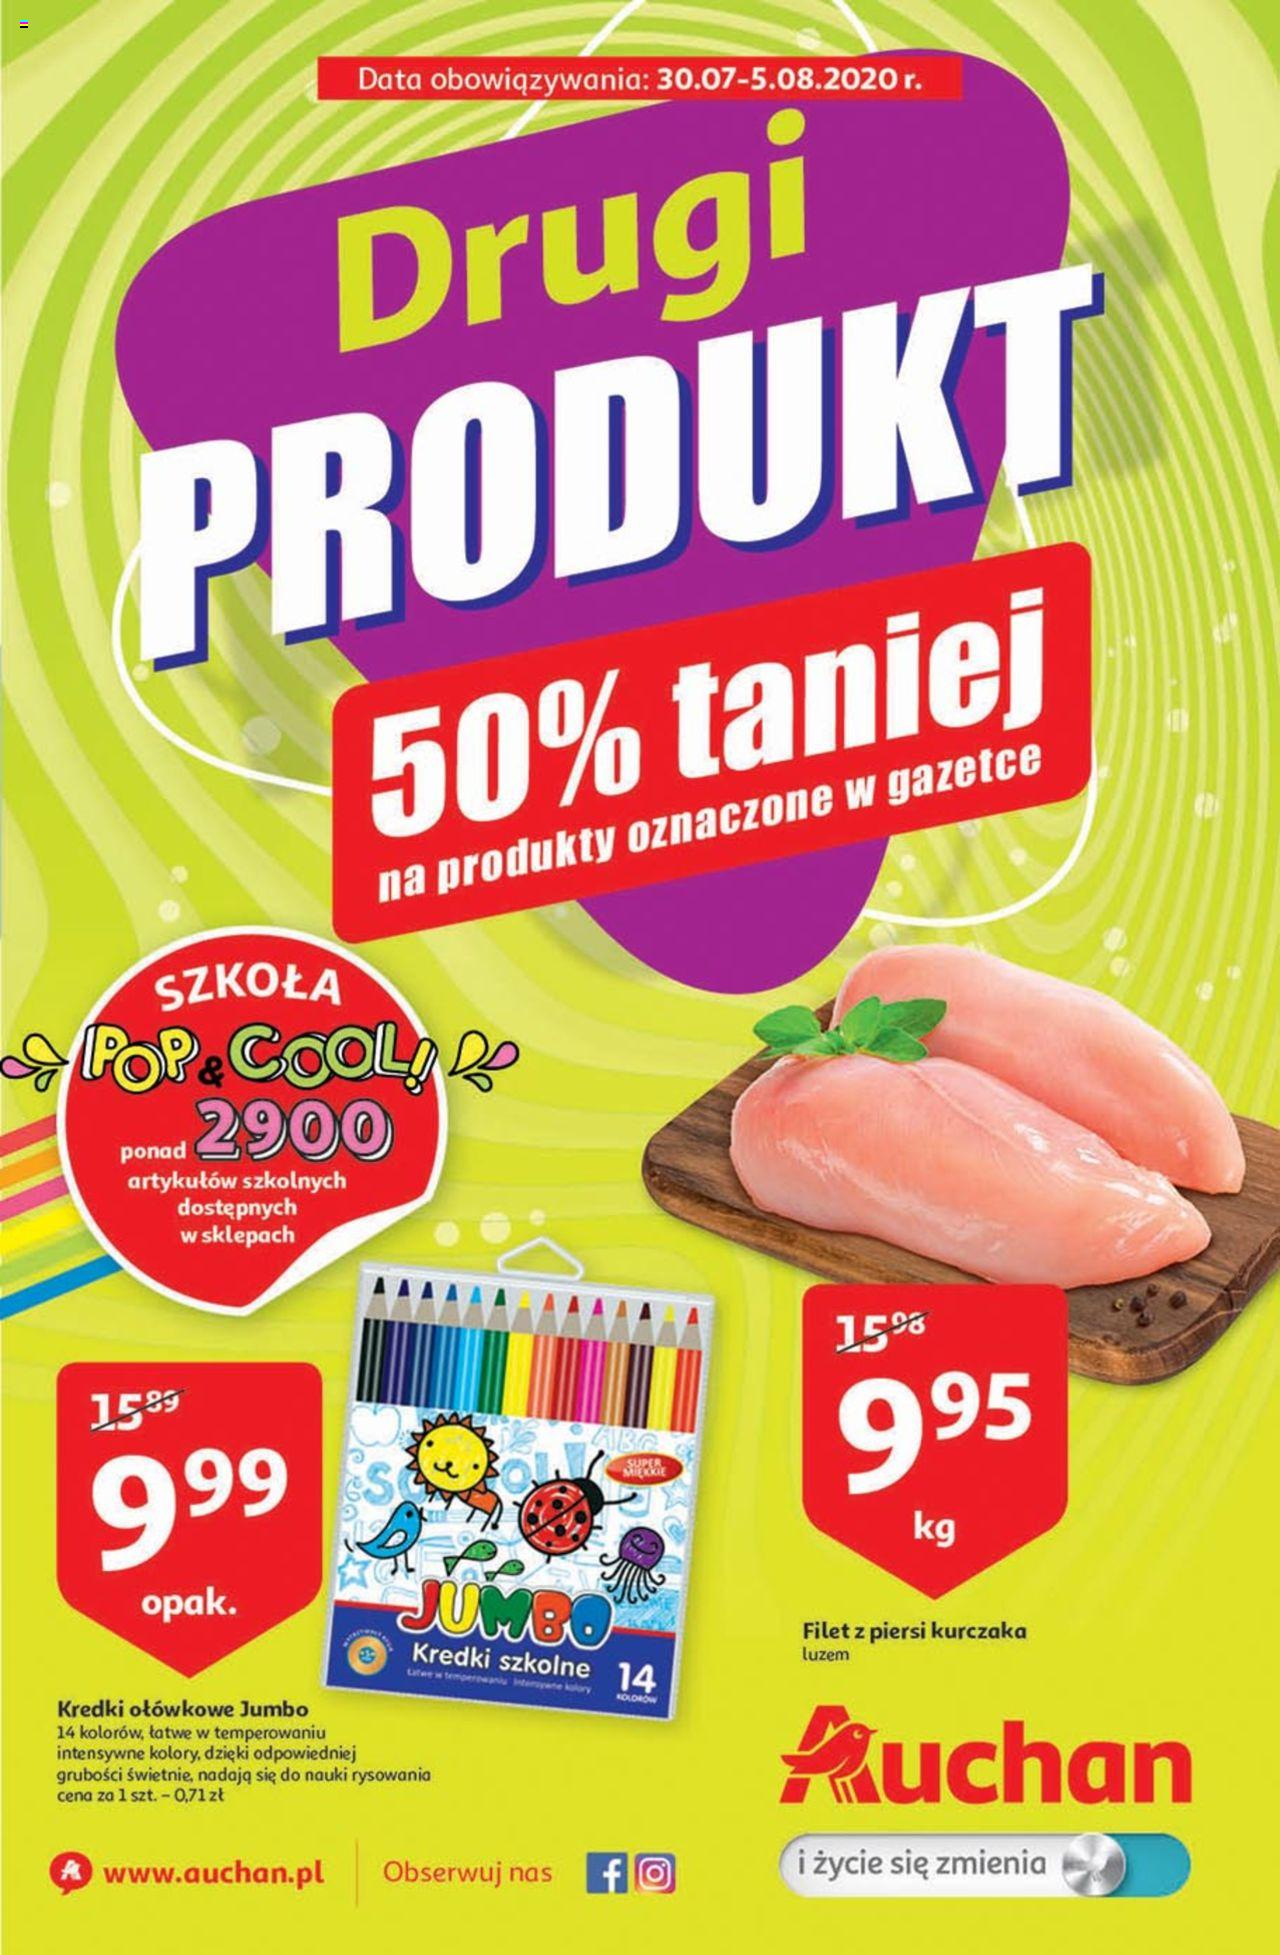 Auchan Hipermarkety Gazetka ważna od 30.07 do 05.08.2020